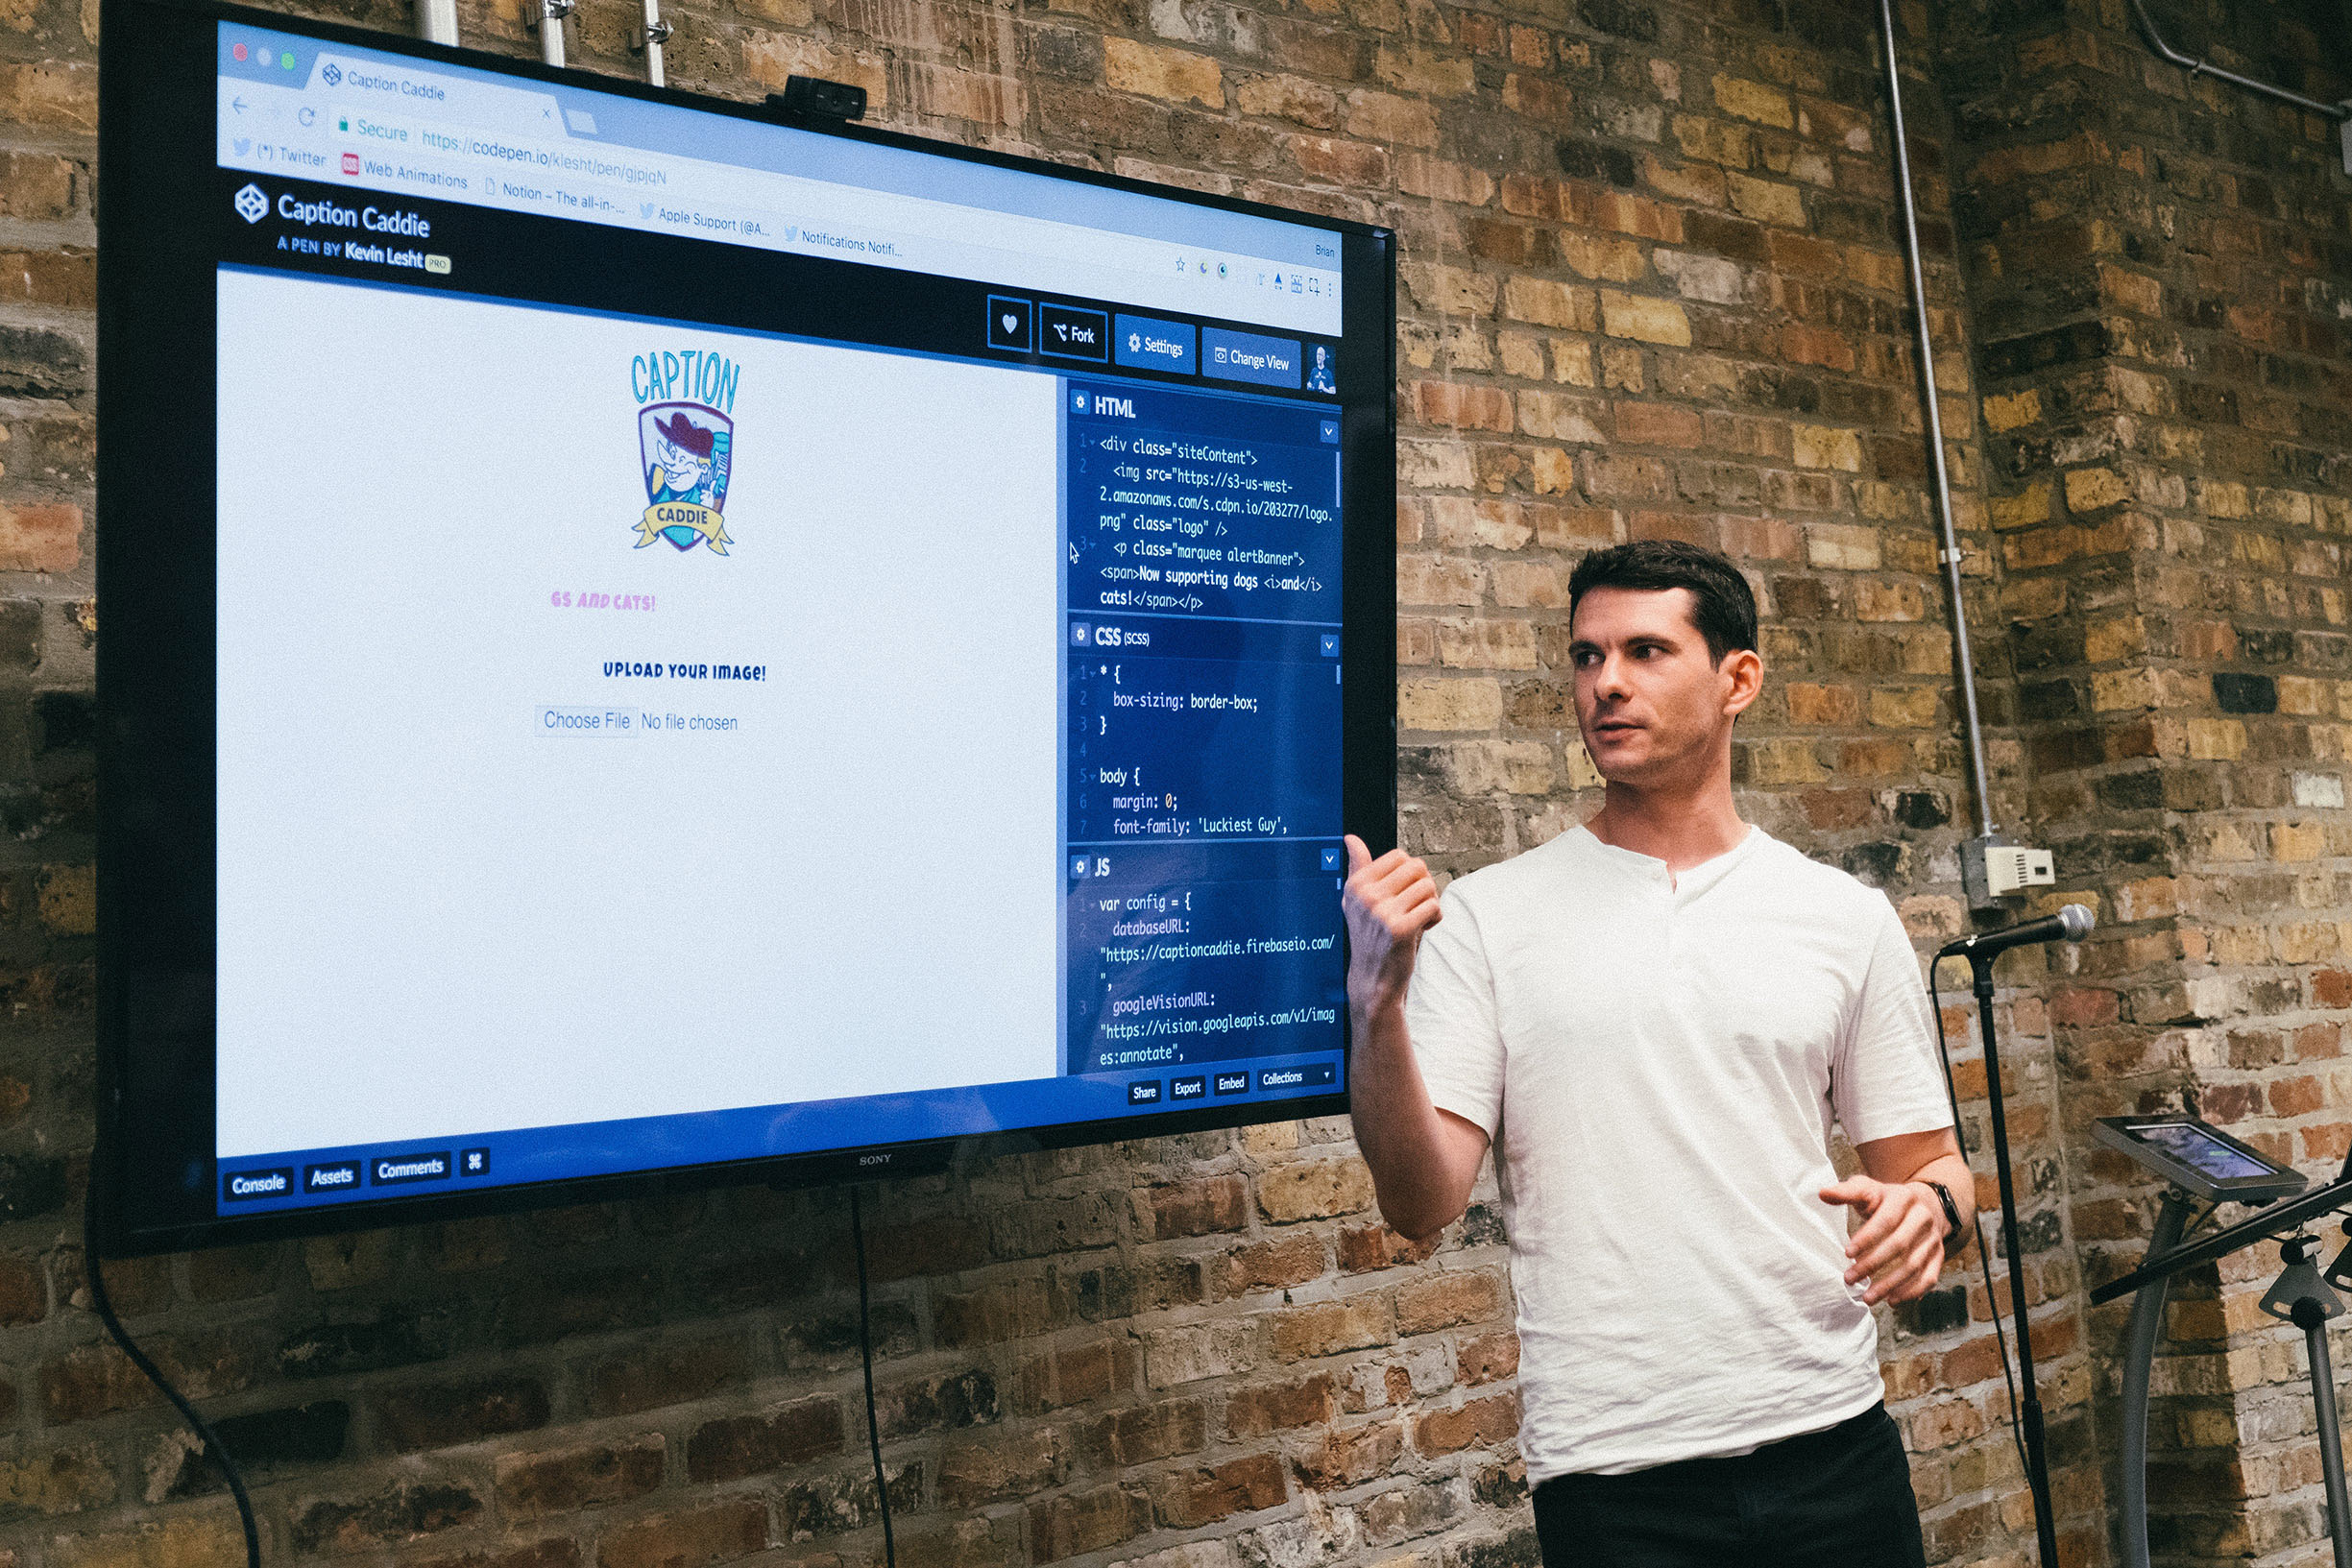 Kevin pointing to a large television of the CodePen he made, Caption Caddie